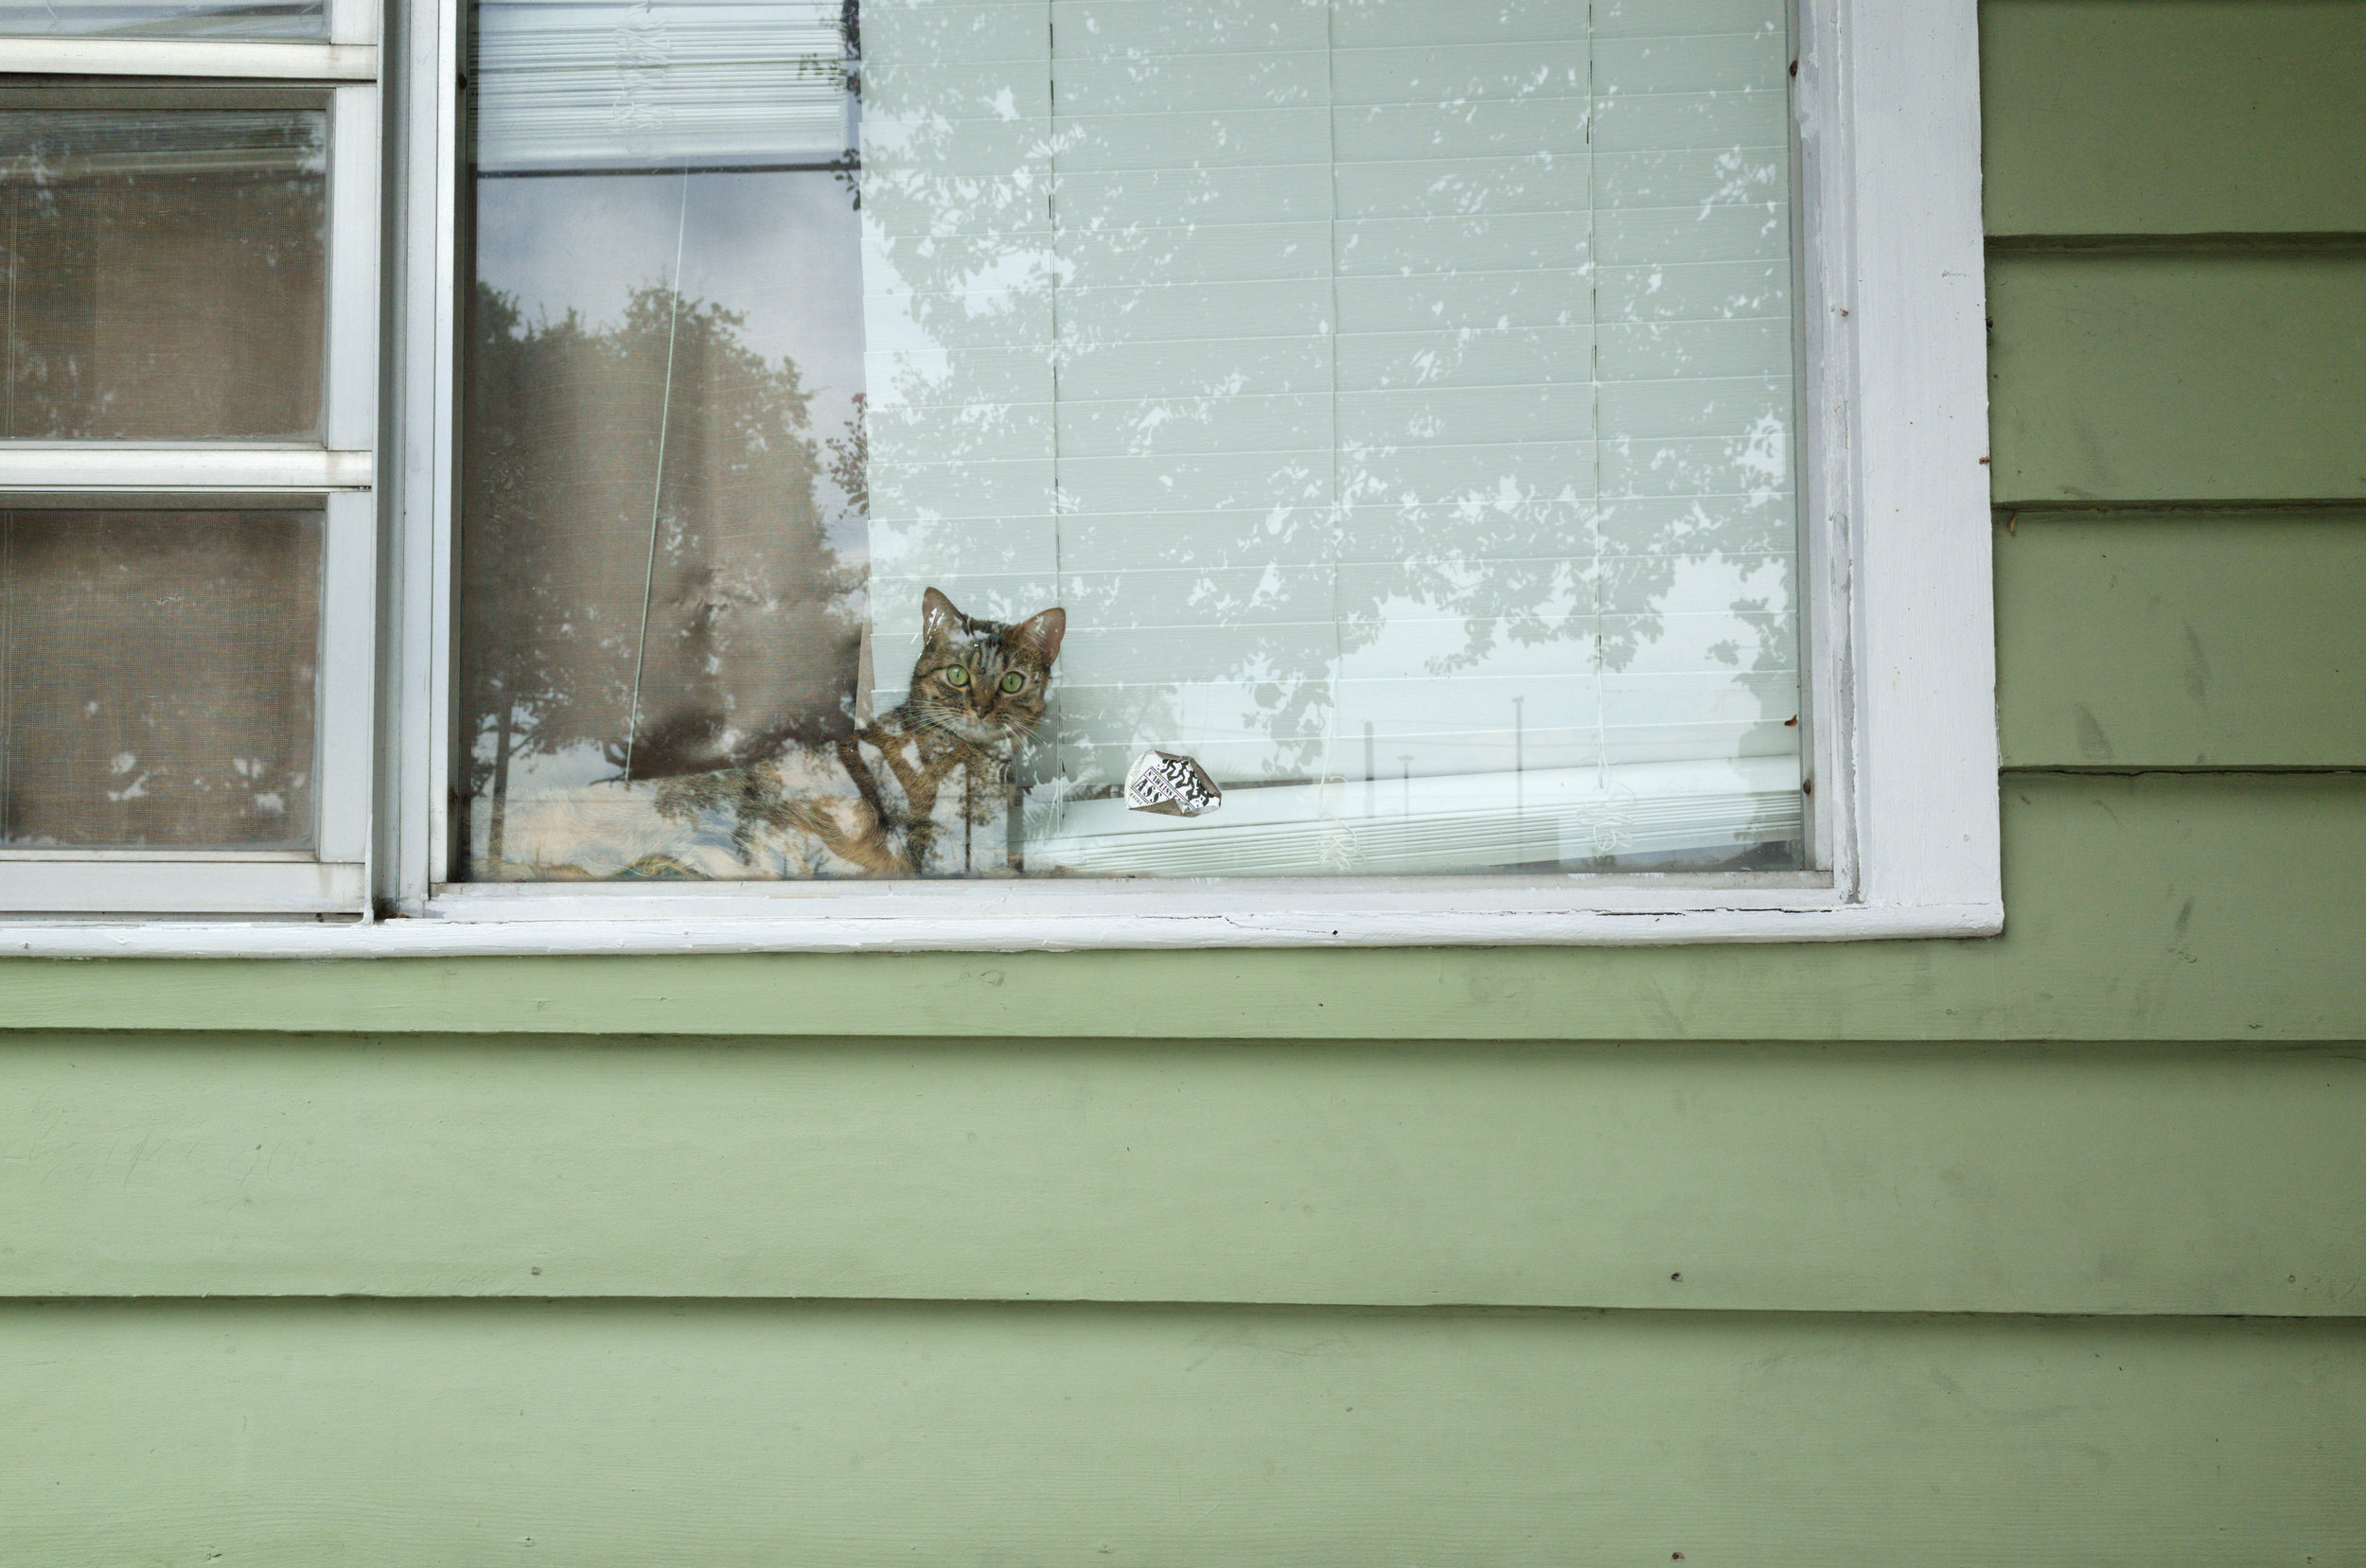 E A - 18-08_Eric-Acosta_NOLA_Window_Cat.jpg